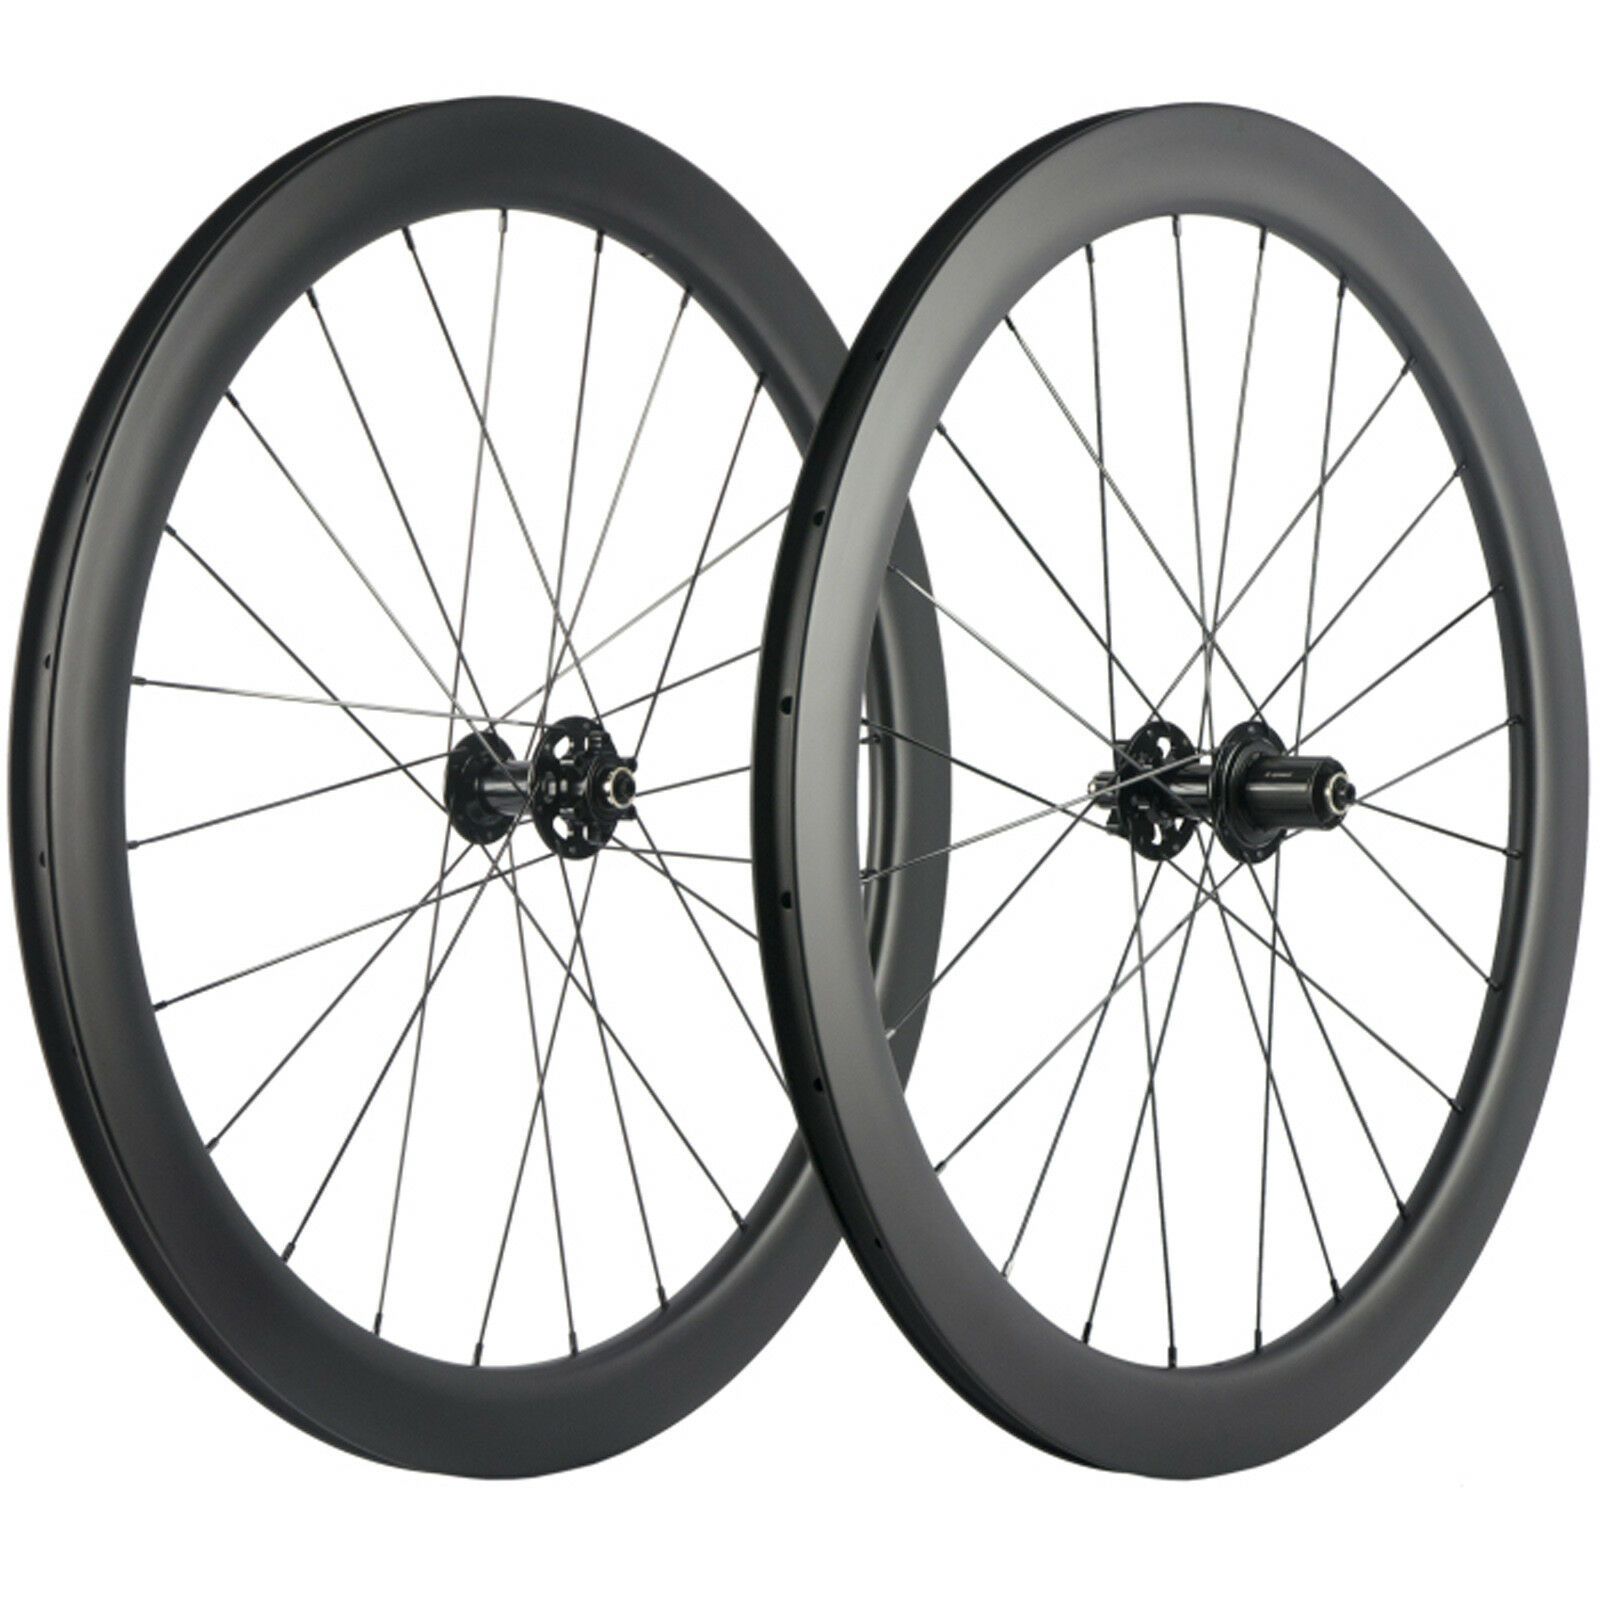 Carbon Disc Brake Wheelset Road Bike 700C 50mm Clincher Carbon Wheels 6 Bolts